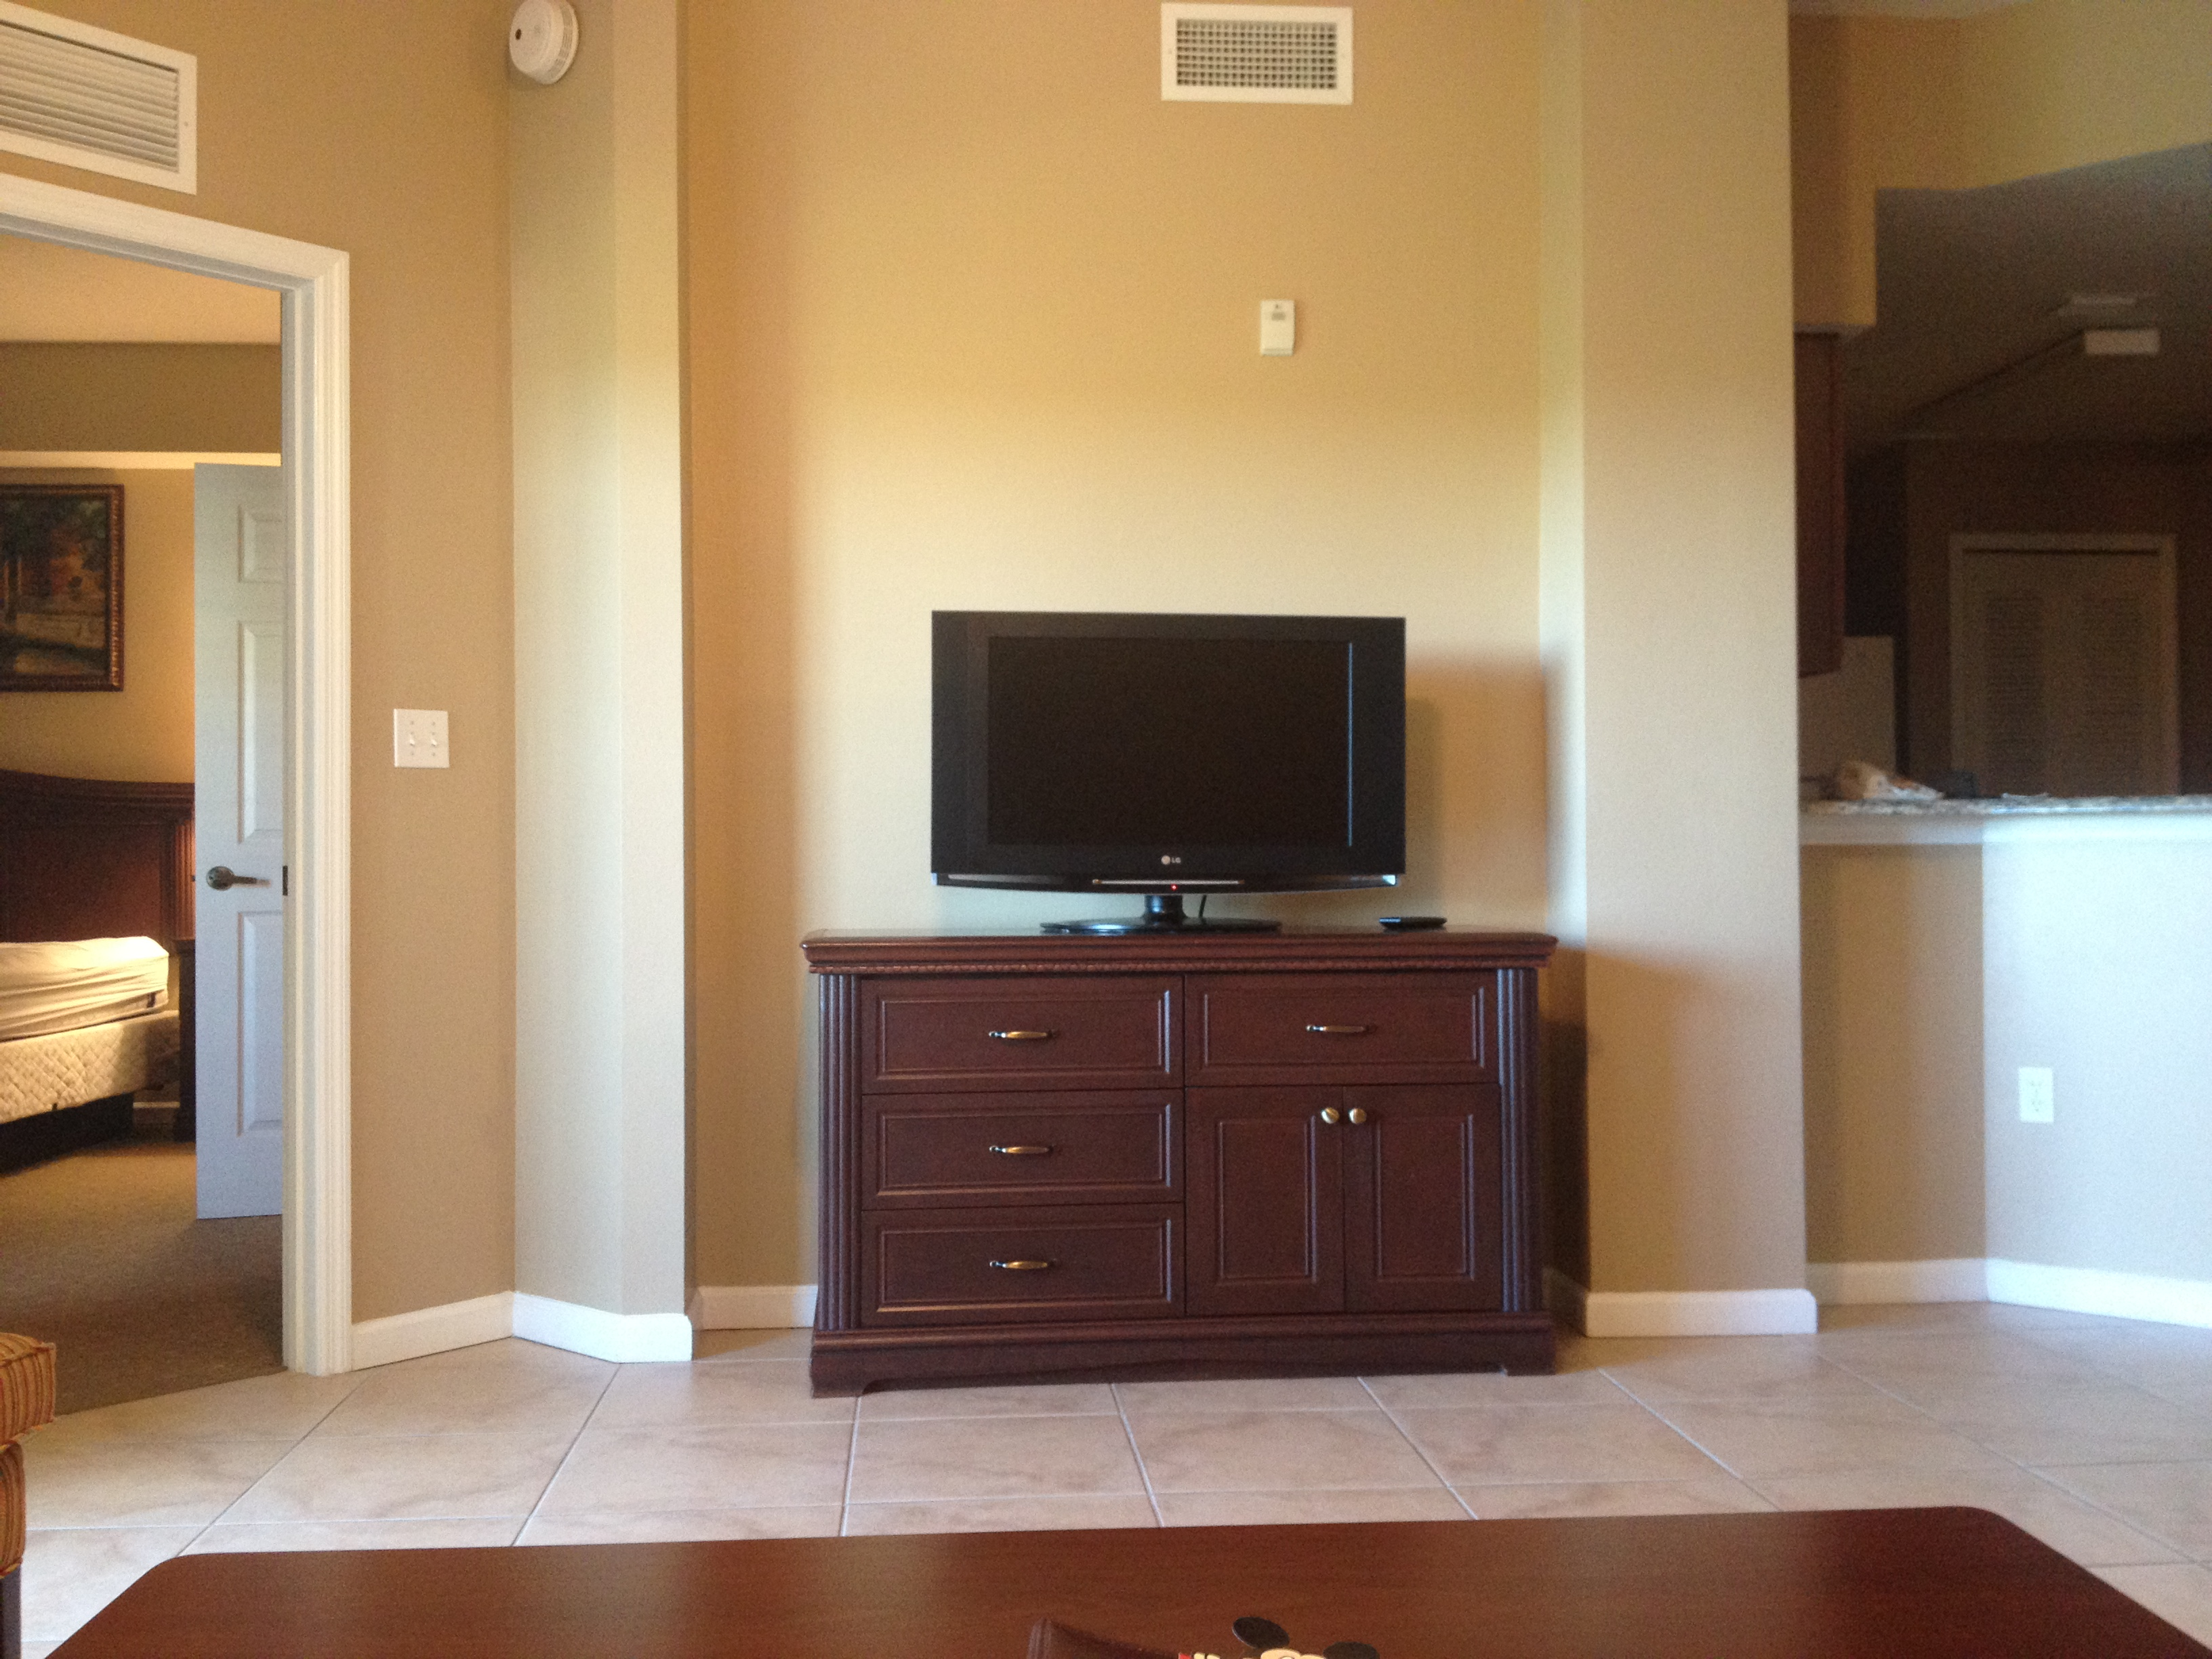 3 Bedroom Suites near Disney World | Floridays Resort | Orlando